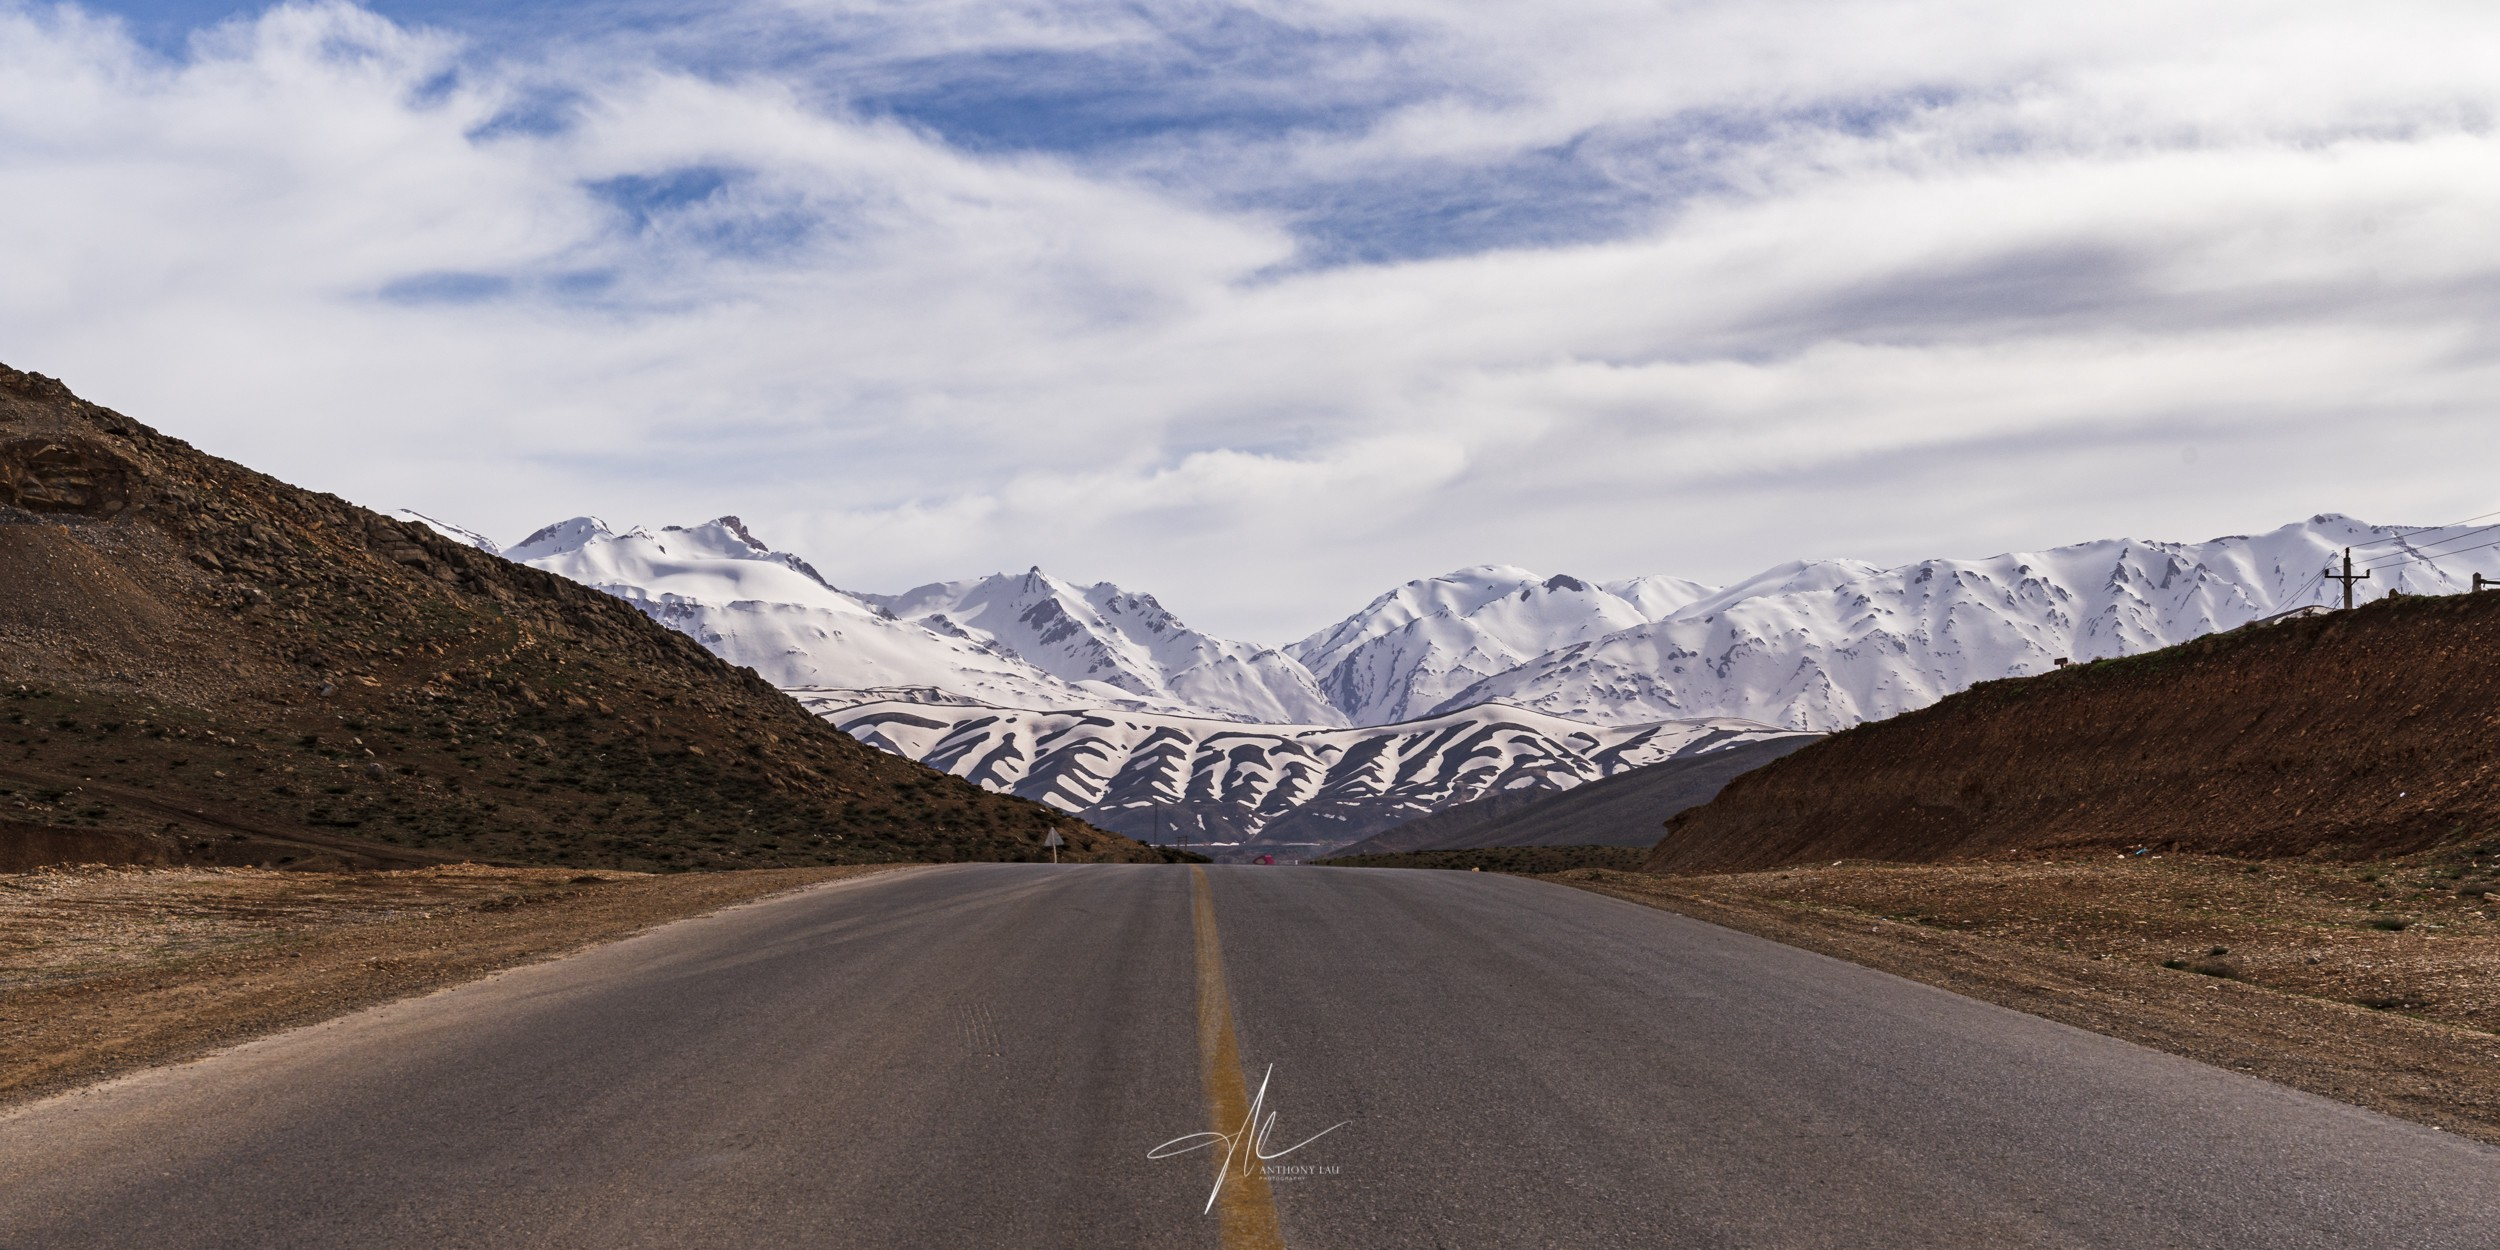 A stunning view of the mountain ranges from the middle of a highway in Zagros Mountain.